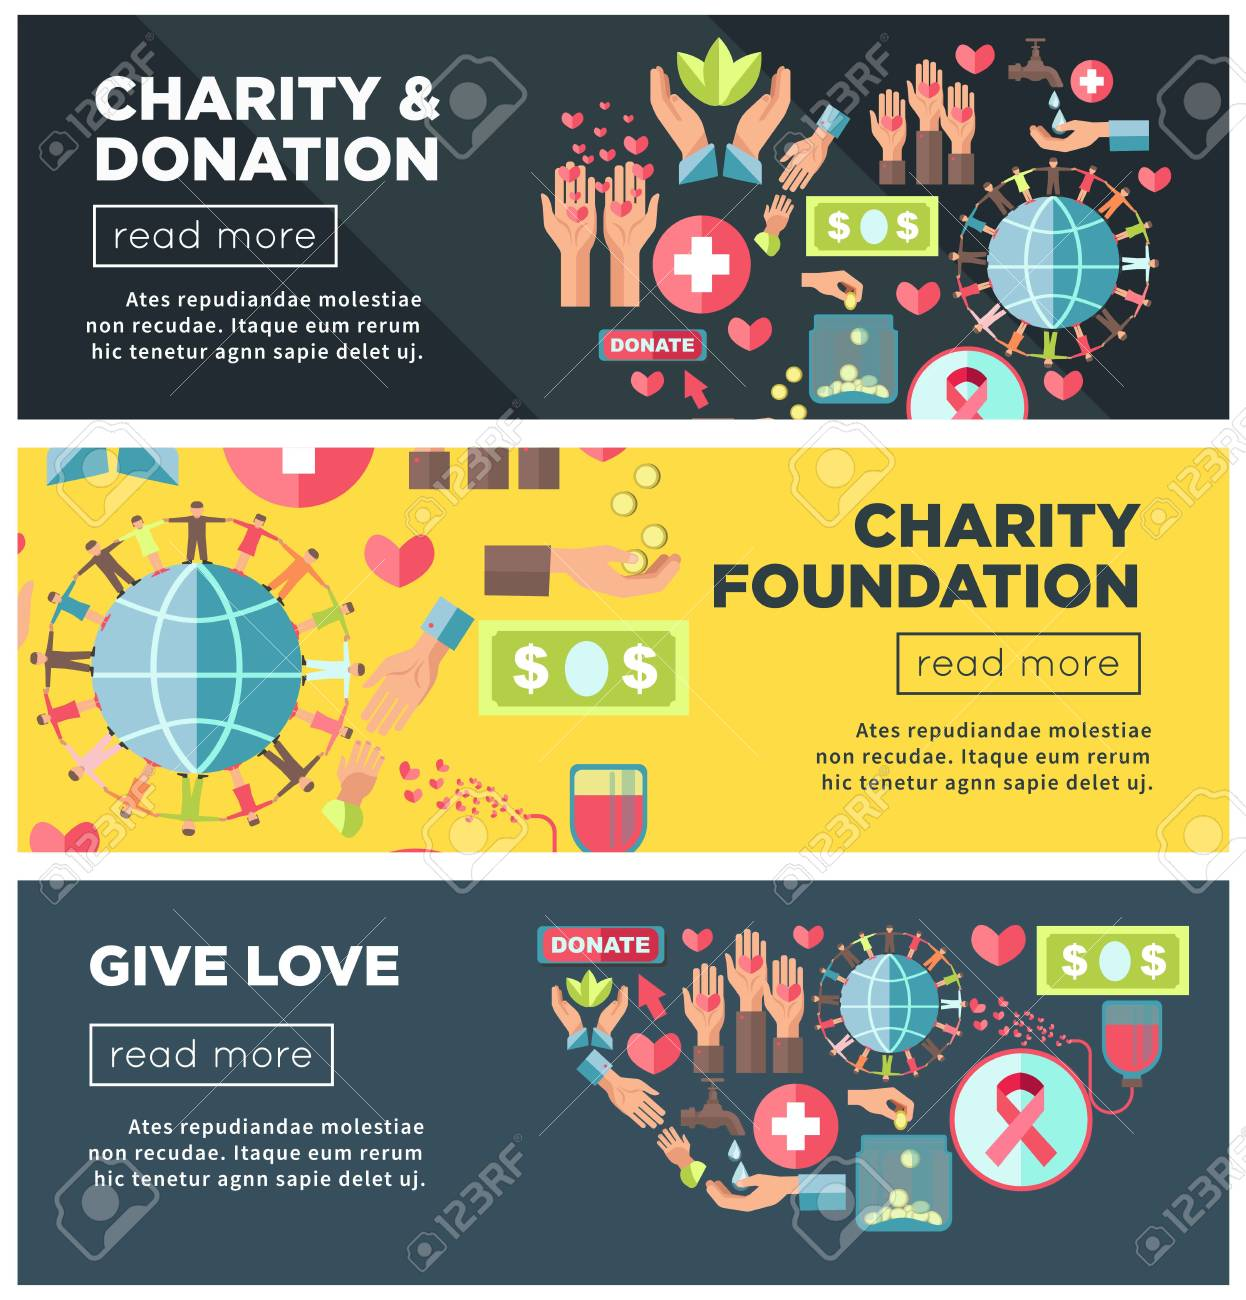 charity and donation foundation promo internet posters templates stock vector 95060567